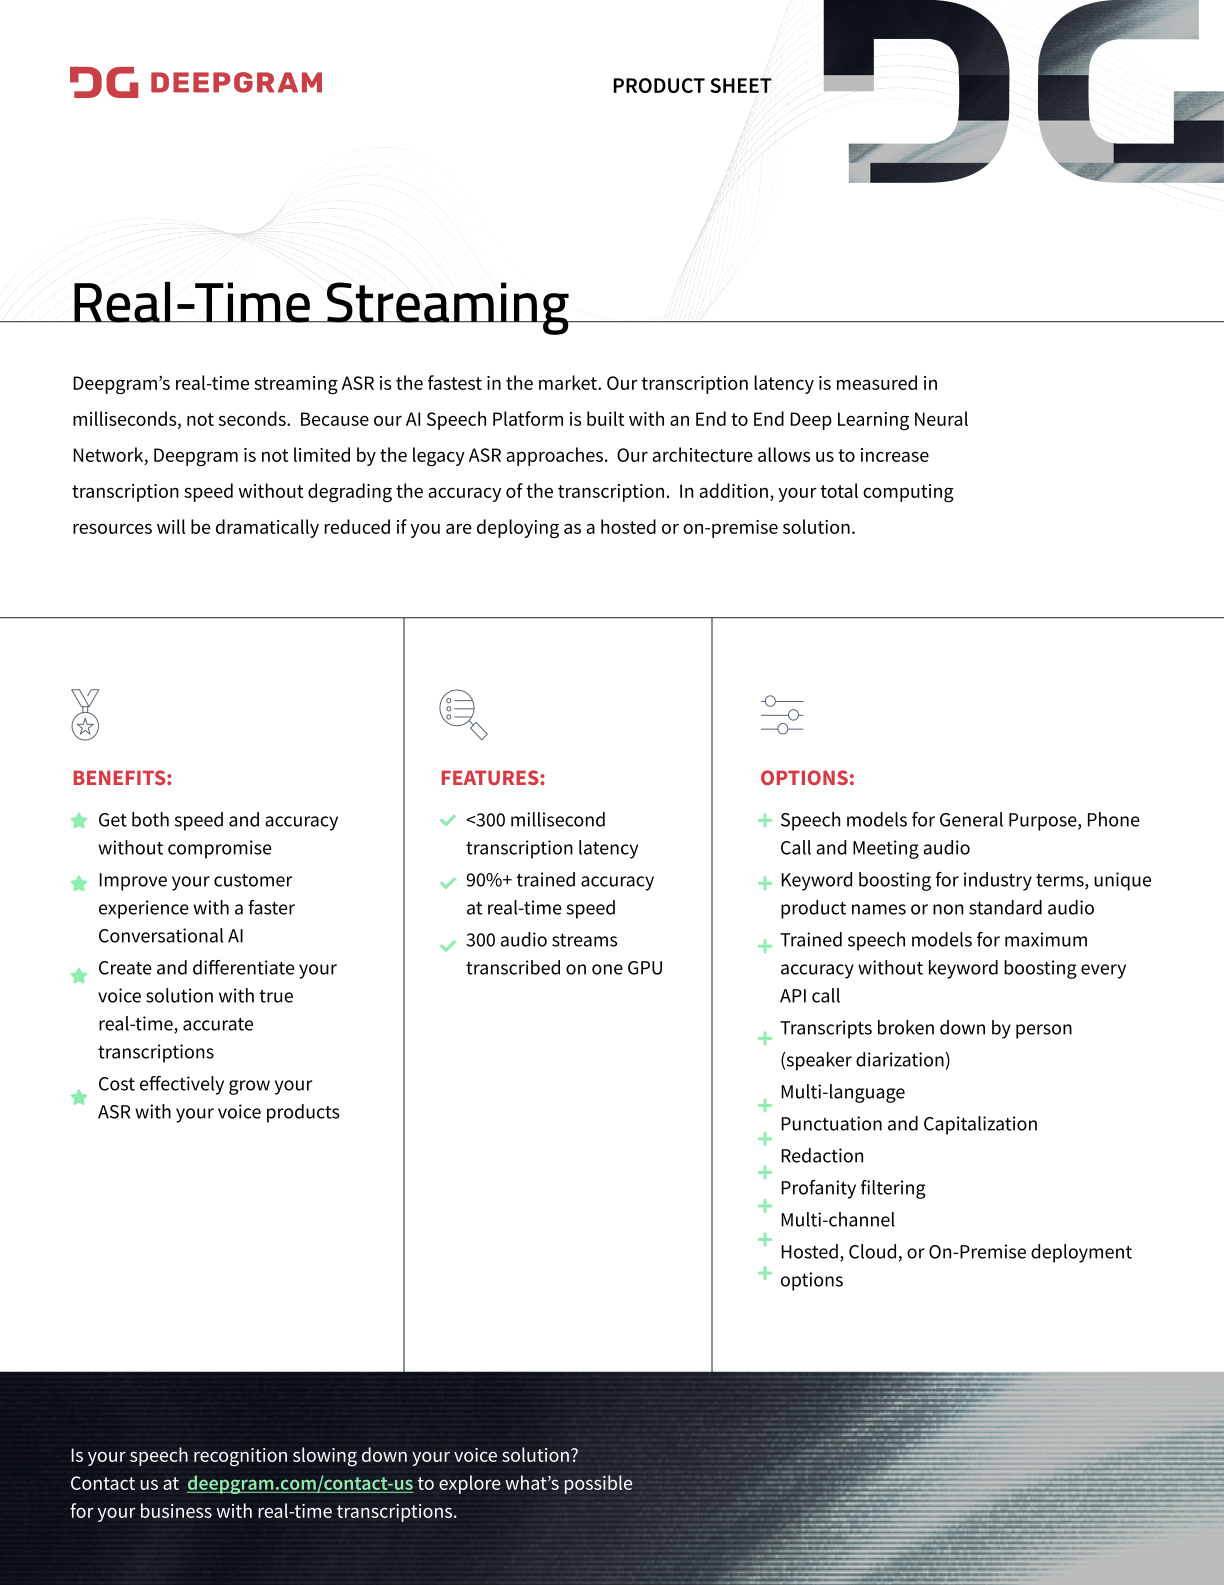 Real-time Streaming